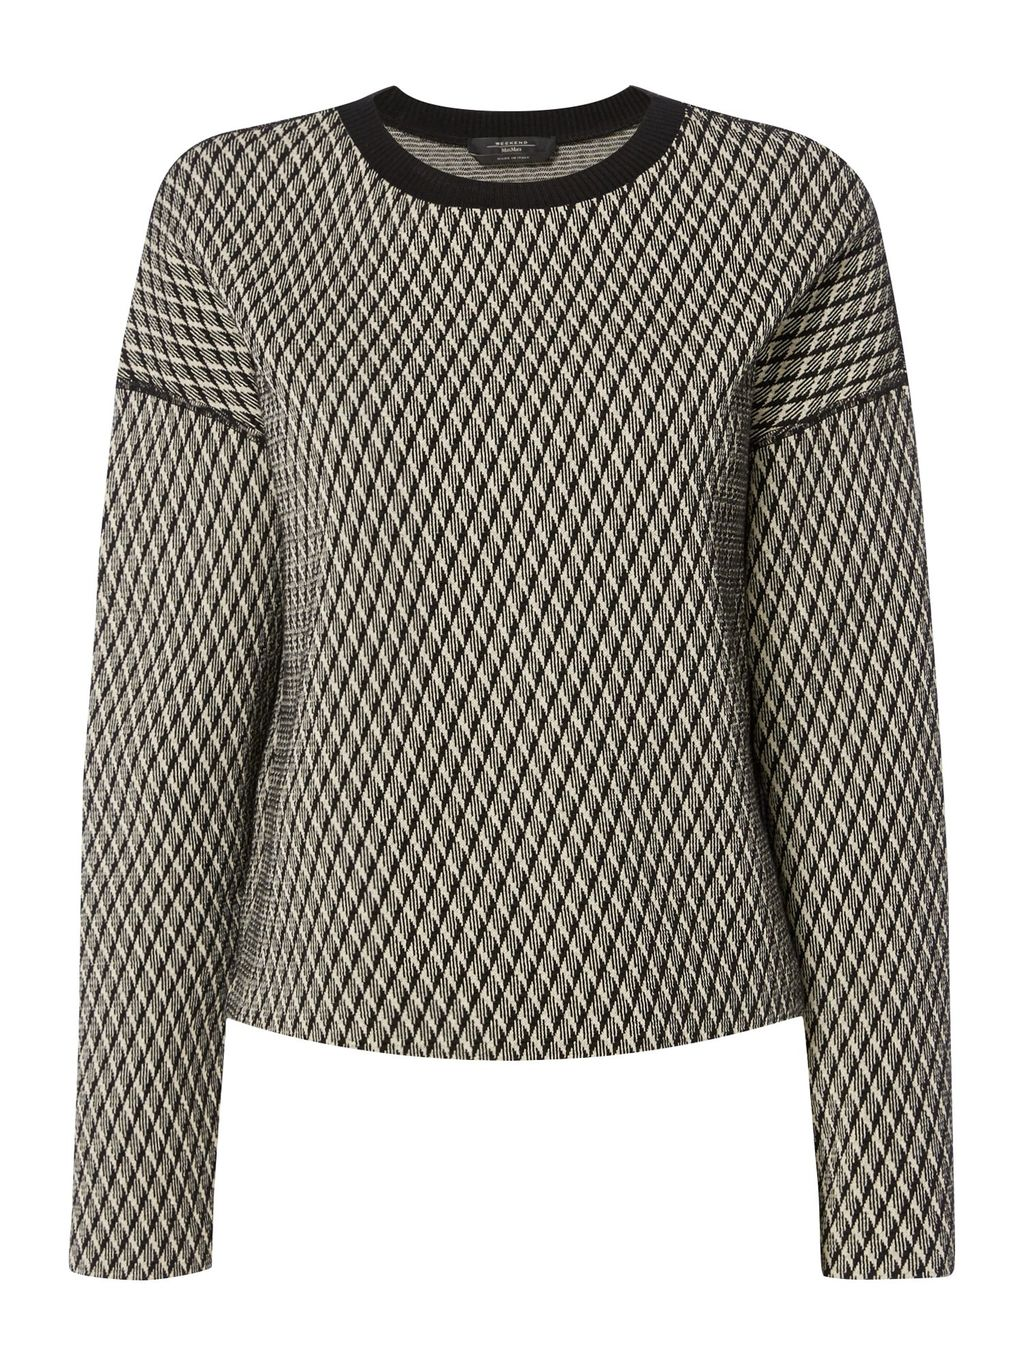 Andina Knitted Jacquard Jumper, Multi Coloured - neckline: round neck; sleeve style: dolman/batwing; style: standard; predominant colour: black; occasions: casual, creative work; length: standard; fibres: cotton - mix; fit: standard fit; sleeve length: long sleeve; texture group: knits/crochet; pattern type: knitted - fine stitch; pattern size: standard; pattern: patterned/print; season: s/s 2016; wardrobe: highlight